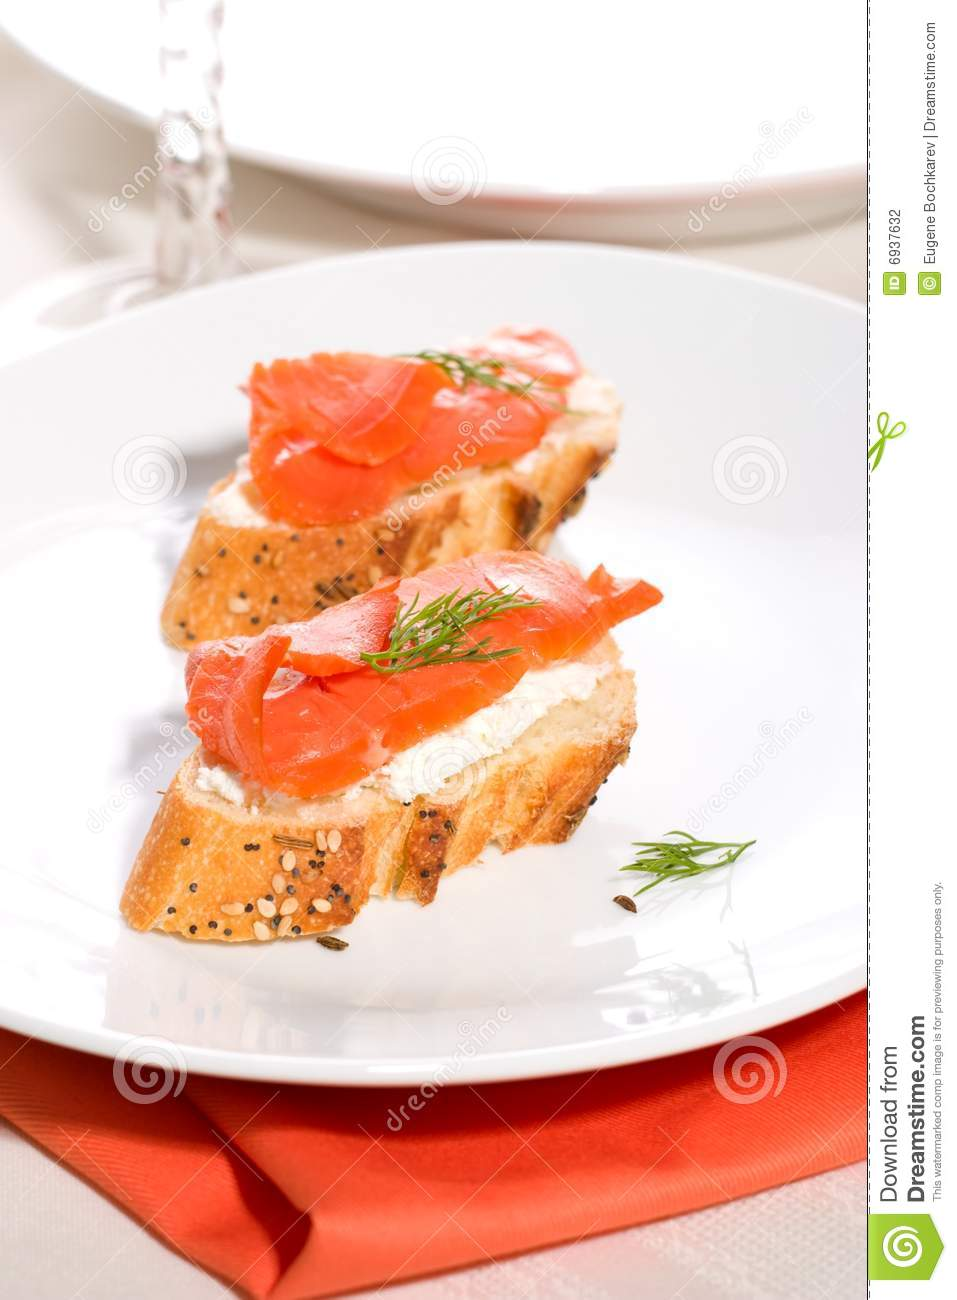 Salmon cheese canape stock photography image 6937632 for Smoked salmon cream cheese canape